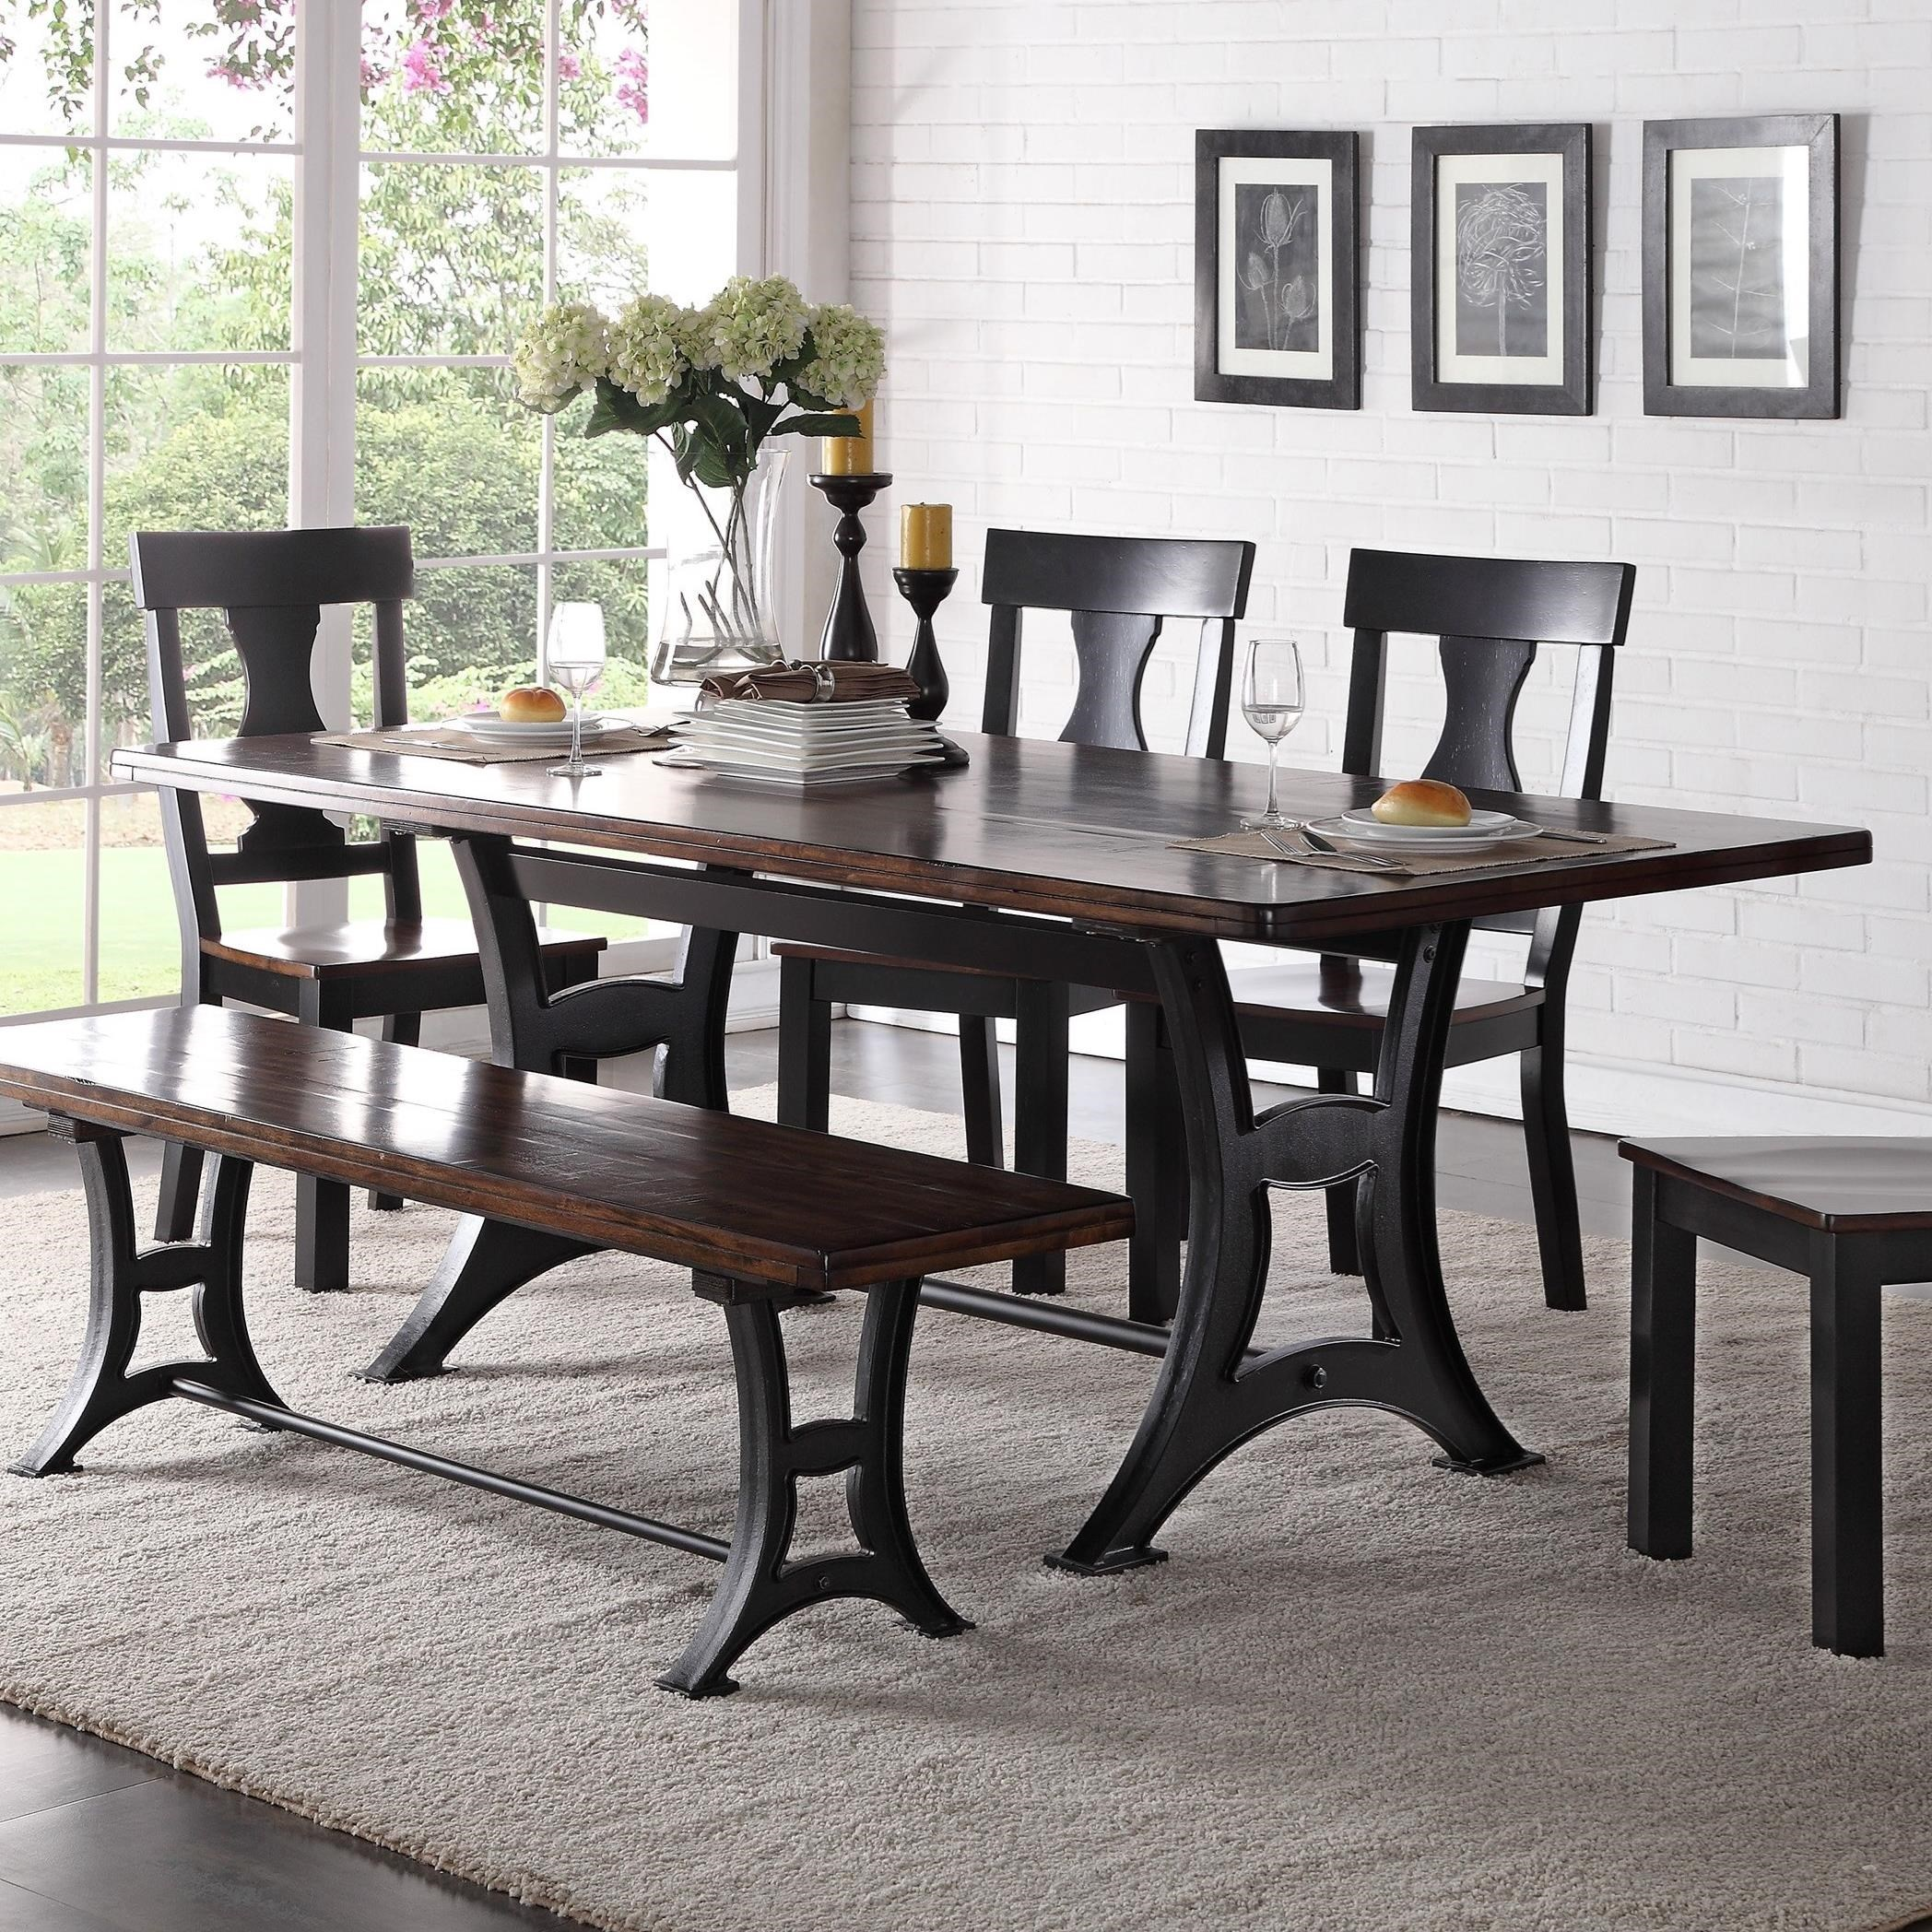 industrial kitchen table furniture. Plain Kitchen Crown Mark Astor Industrial Dining Table With Trestle Base And Rustic Top With Kitchen Furniture I